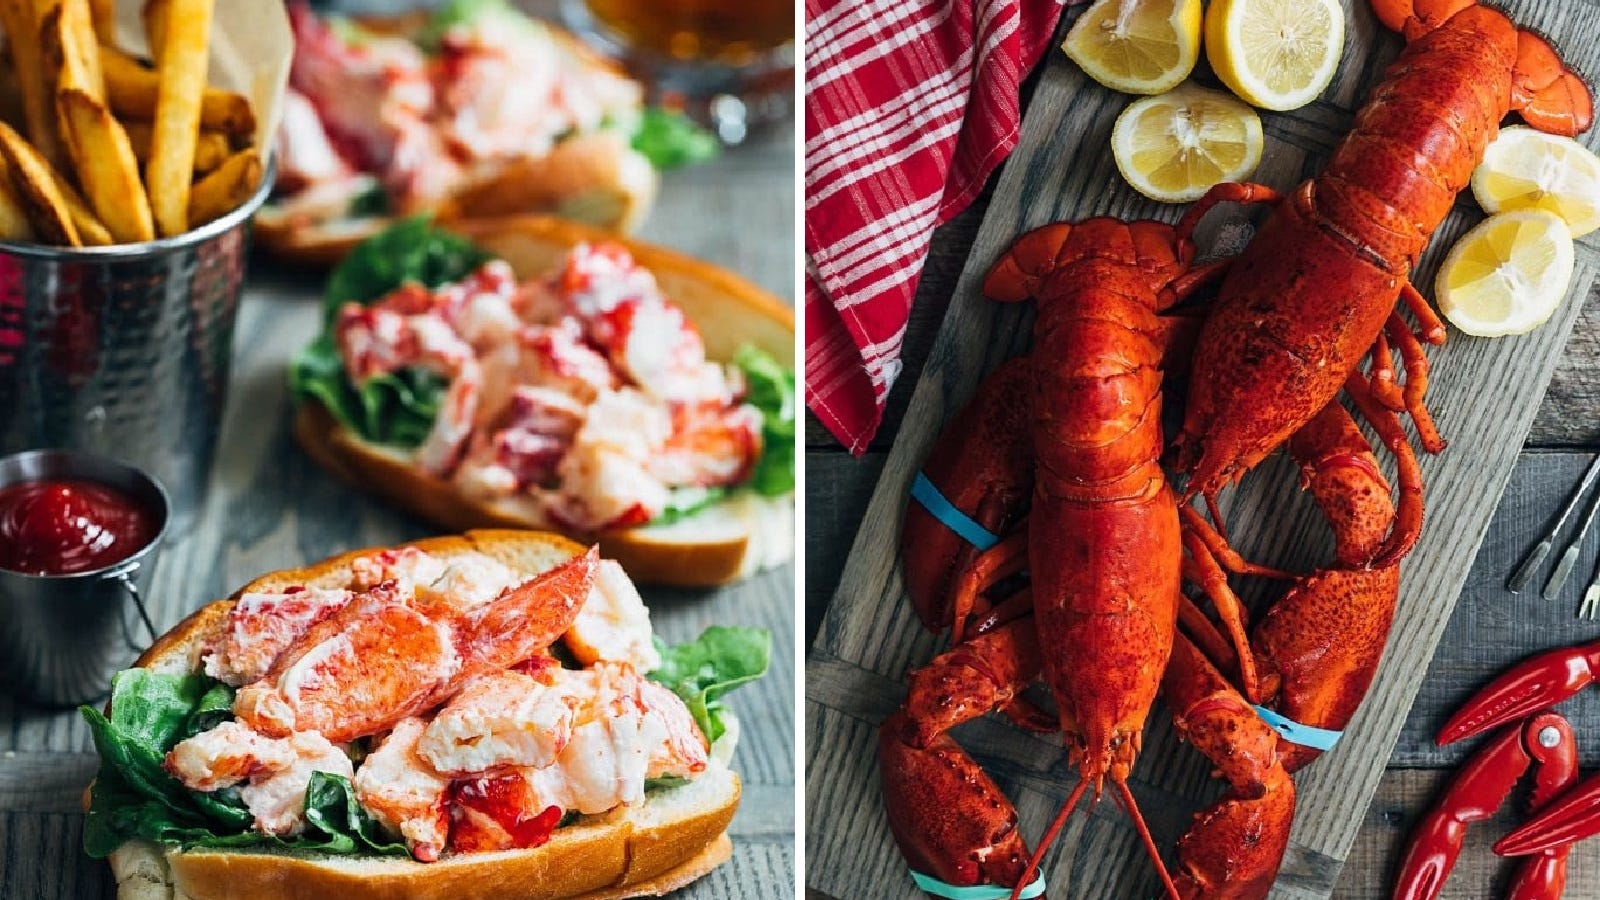 Two images: The left image is of cold Maine lobster rolls served with French fries, and the right image is of two Maine lobsters freshly steamed, and ready to eat.